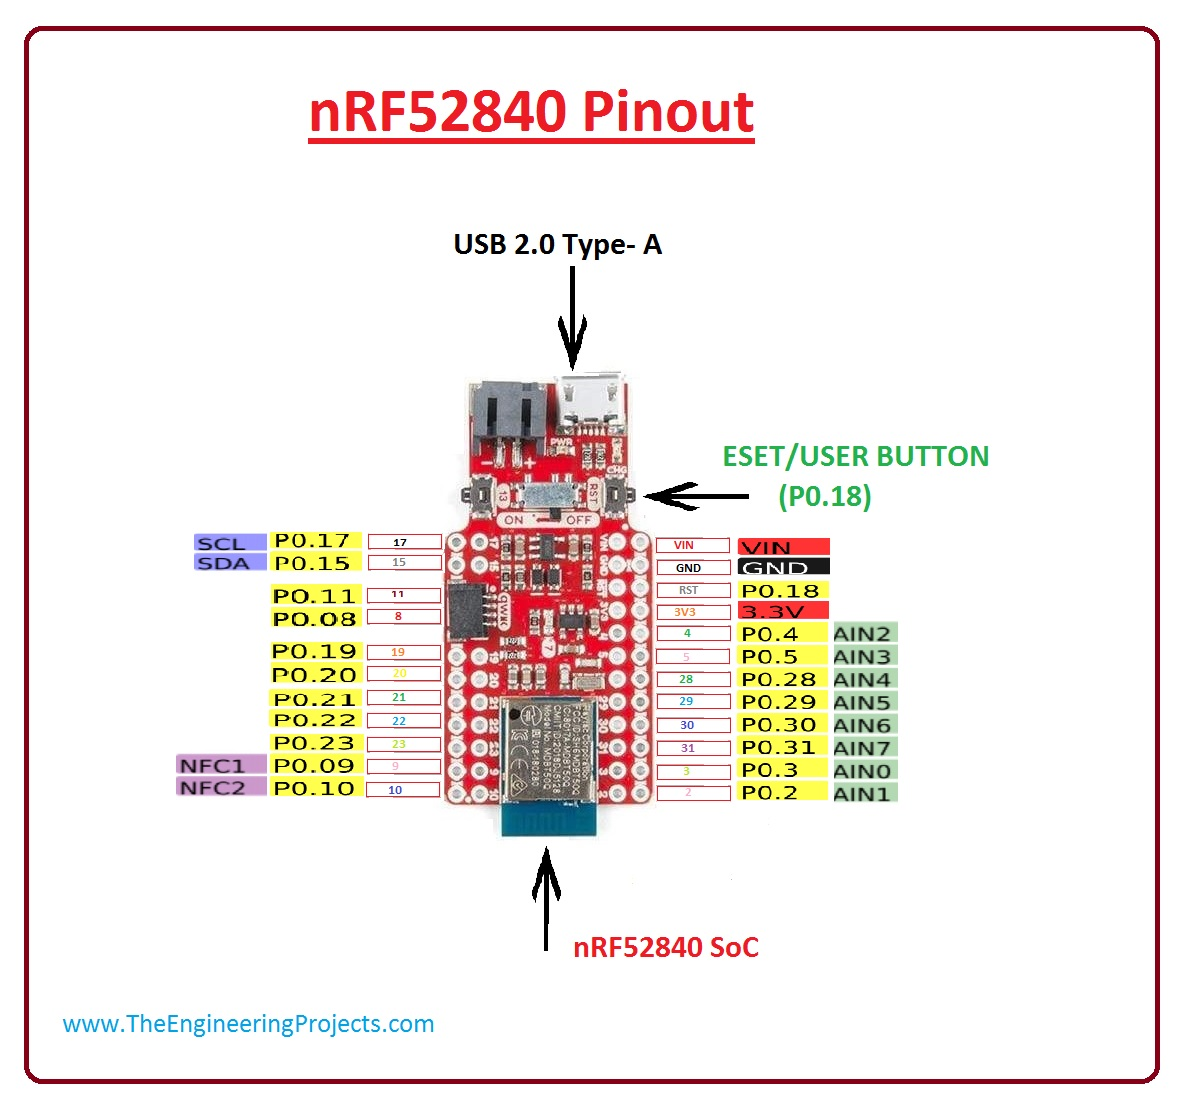 introduction to nRF52840, nRF52840 pinout, nRF52840 working, nRF52840 applications, nRF52840 features, nRF52840